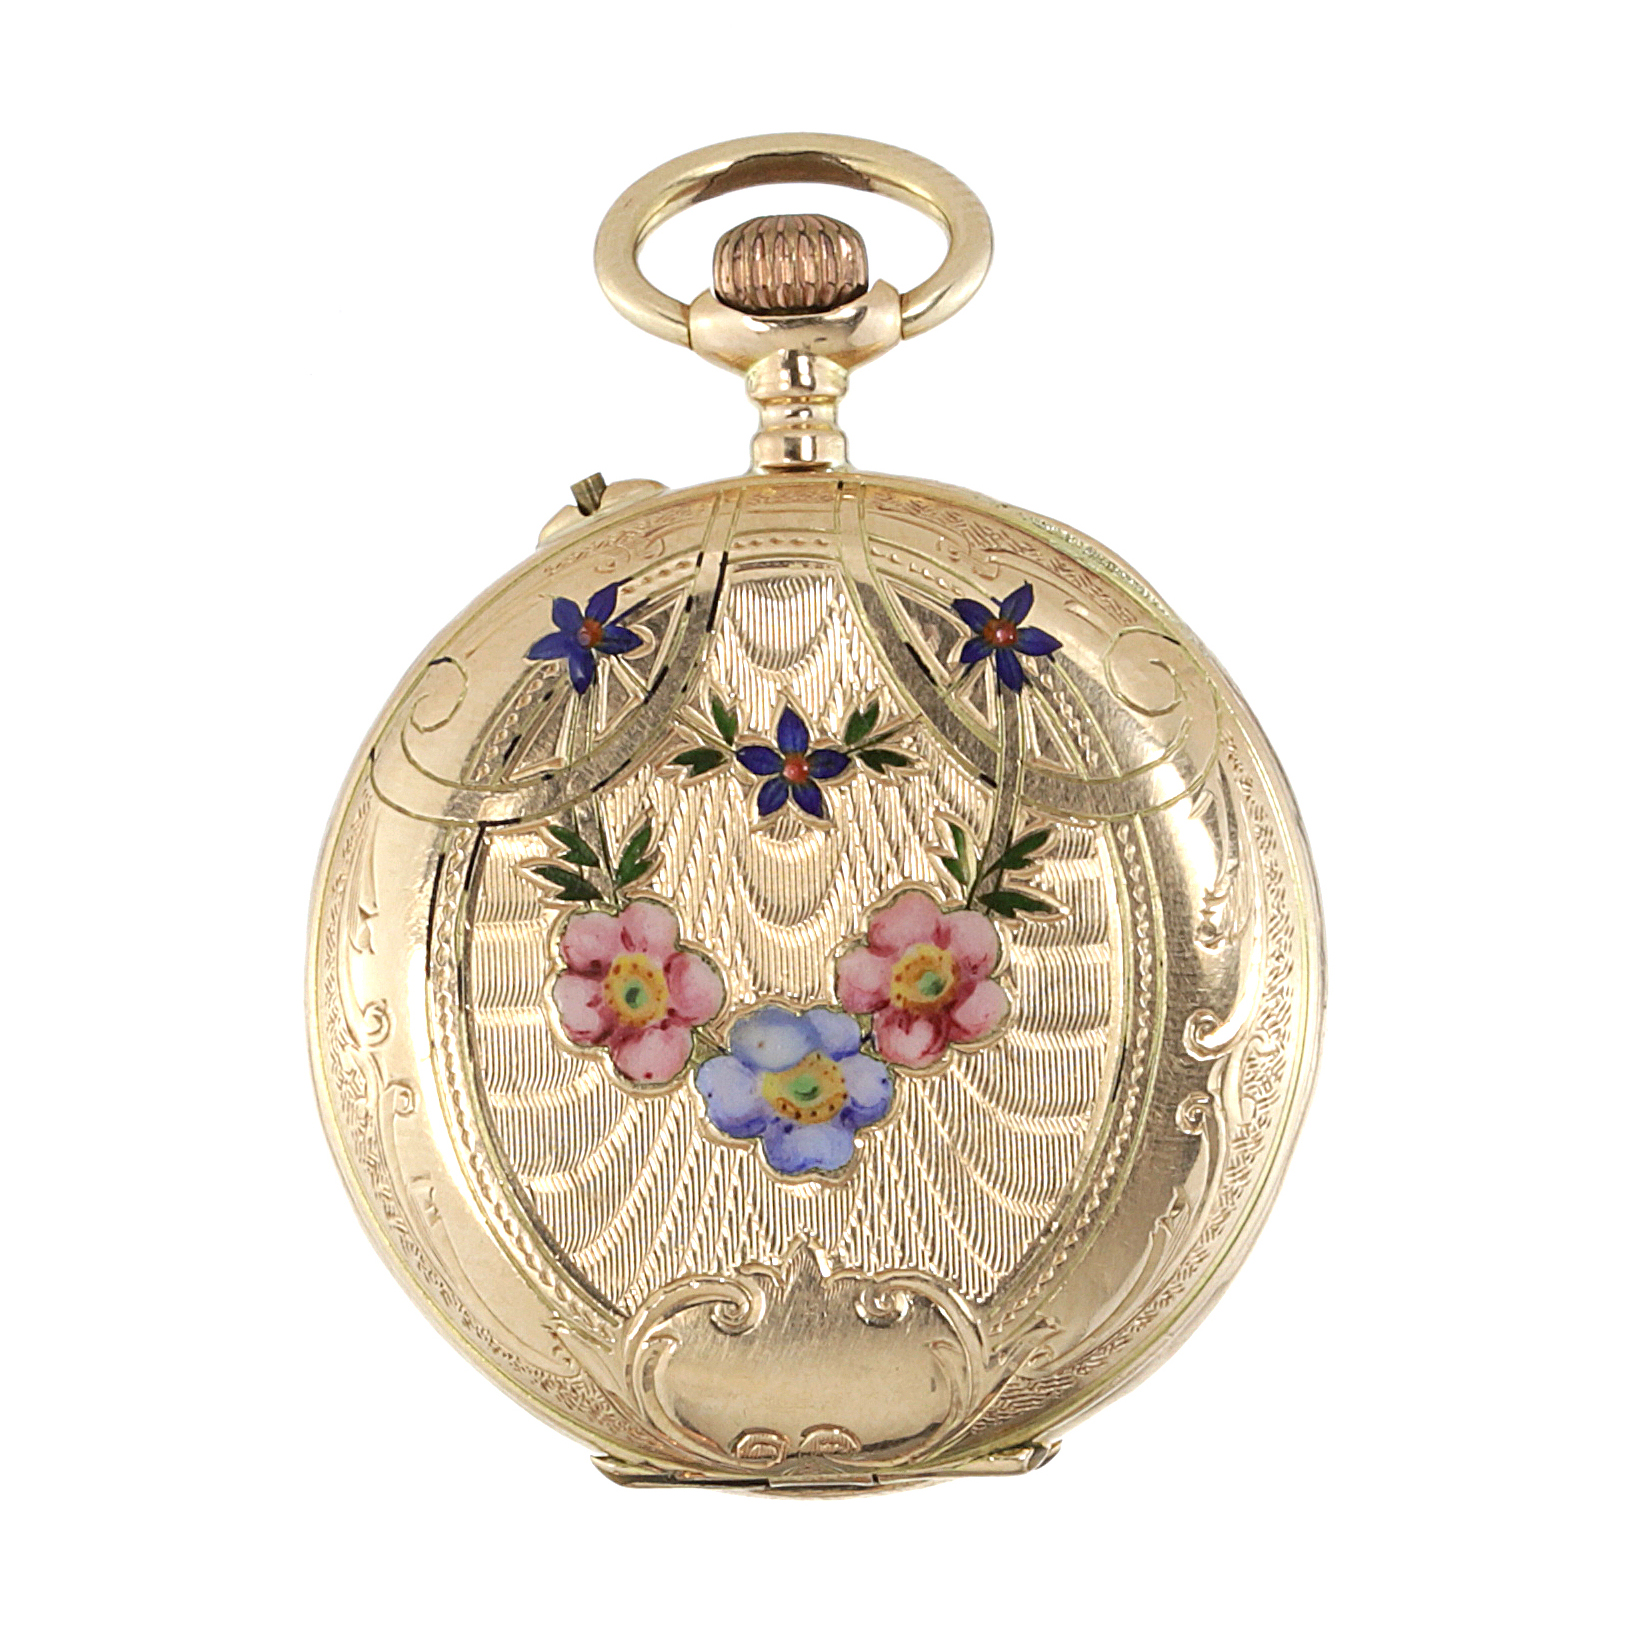 Los 307 - AN ENAMEL POCKET WATCH in high carat yellow gold, the circular case with engraved foliate